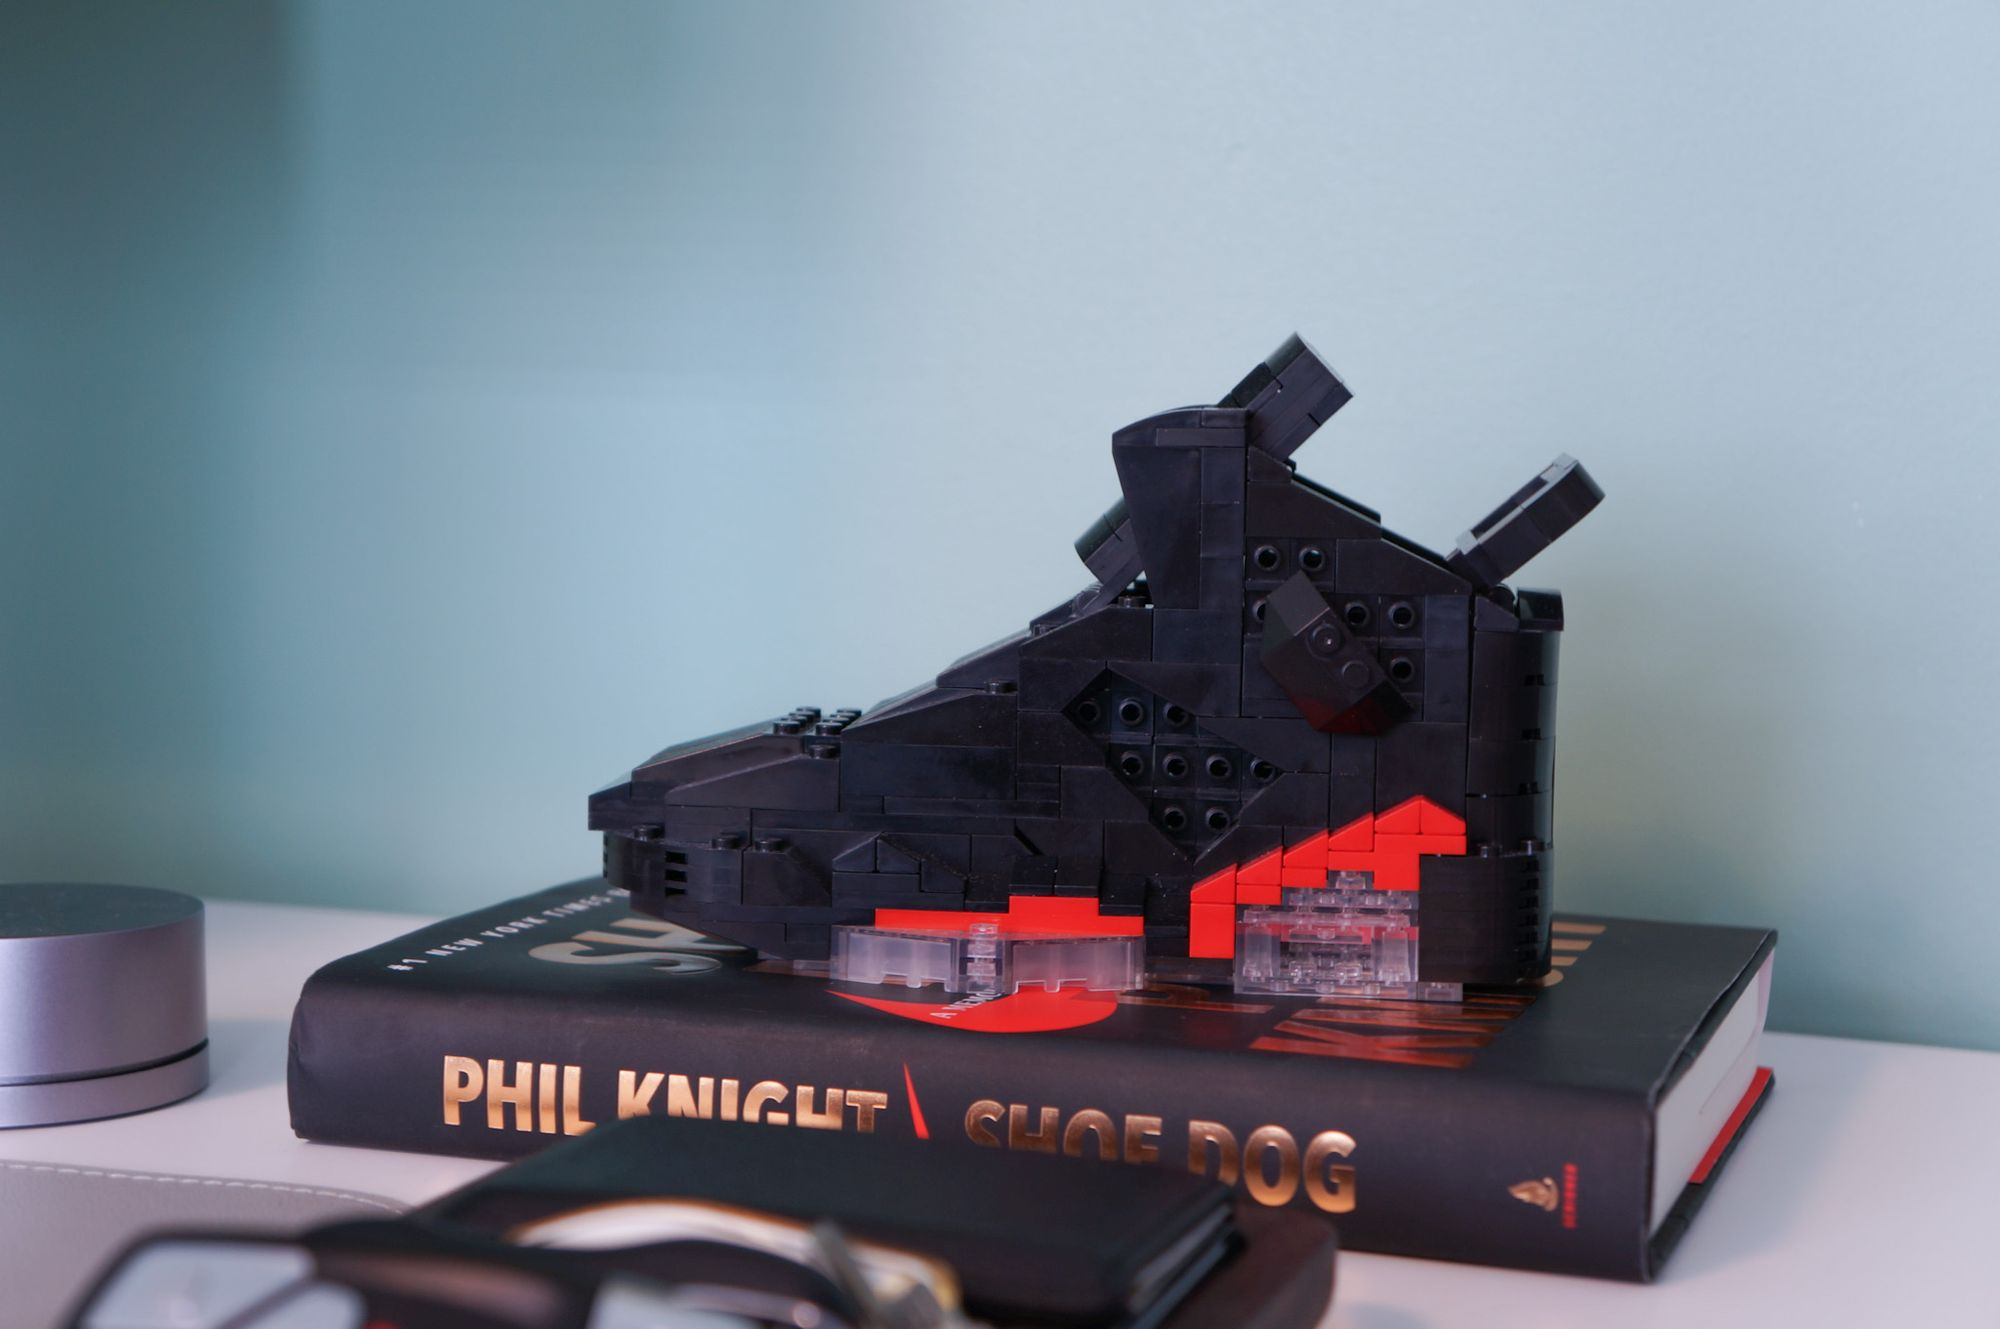 Kickbrick version of the black infrared Air Jordan 6s sold by Netmagnetism. It's made of ~350 pieces